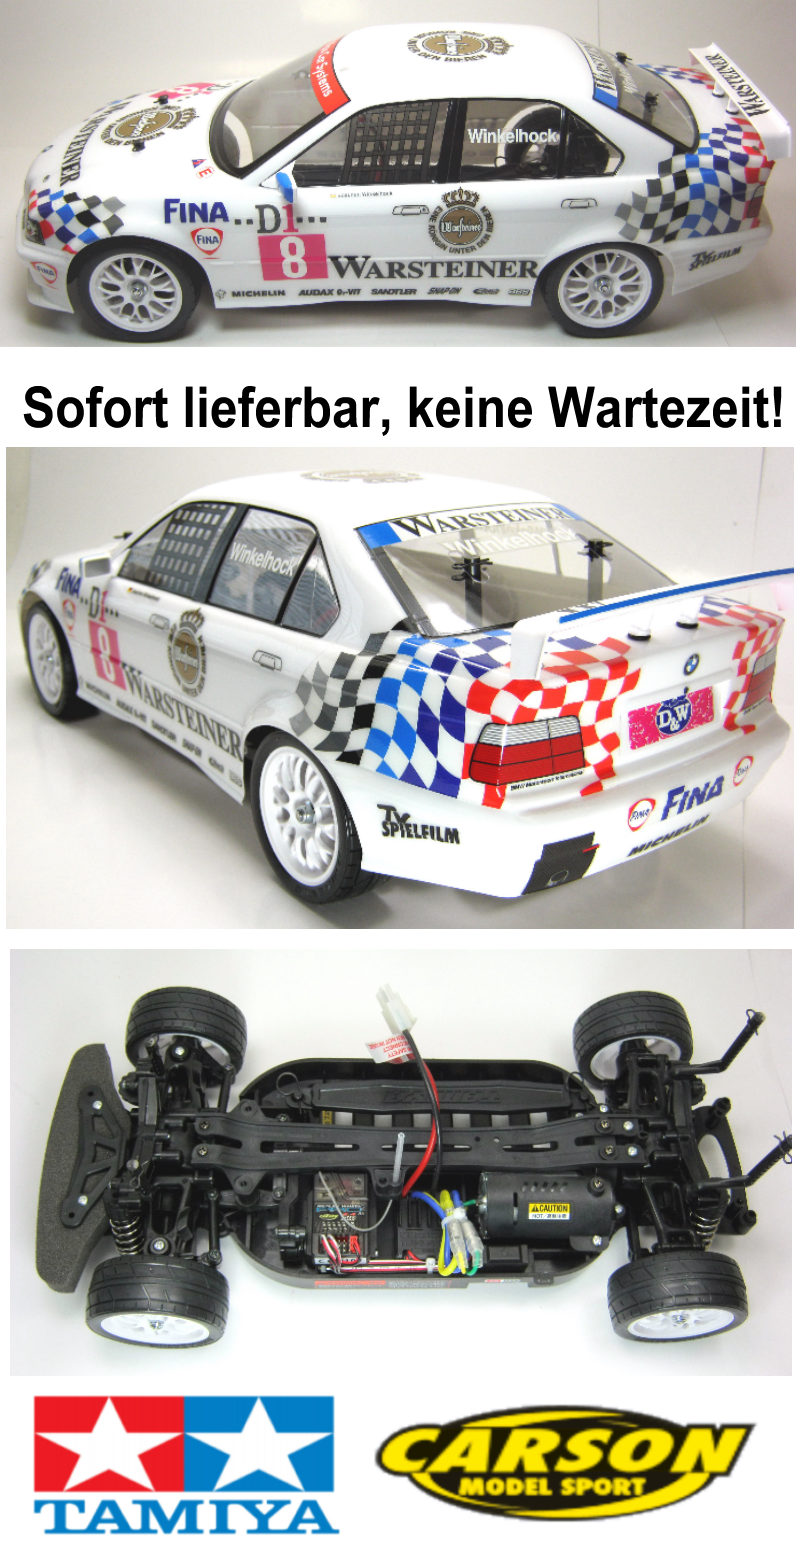 rc car model shops with Tamiya Tt 01 Xbs Bmw 318i Stw Warsteiner Carson 24 Ghz 46613 Rtr Set on Fms Wwii P40 Warhawk 1400 Series Electric Artf Aircraft With Retract Landing Gear Green 345 P in addition Emergency Vehicle Toys 2015 as well Ktm besides Beschrankter Bahnuebergang further Games Workshop Warhammer Knights Of Bretonnia Knights Errant Knights Of The Realm 82 06 3233 P.